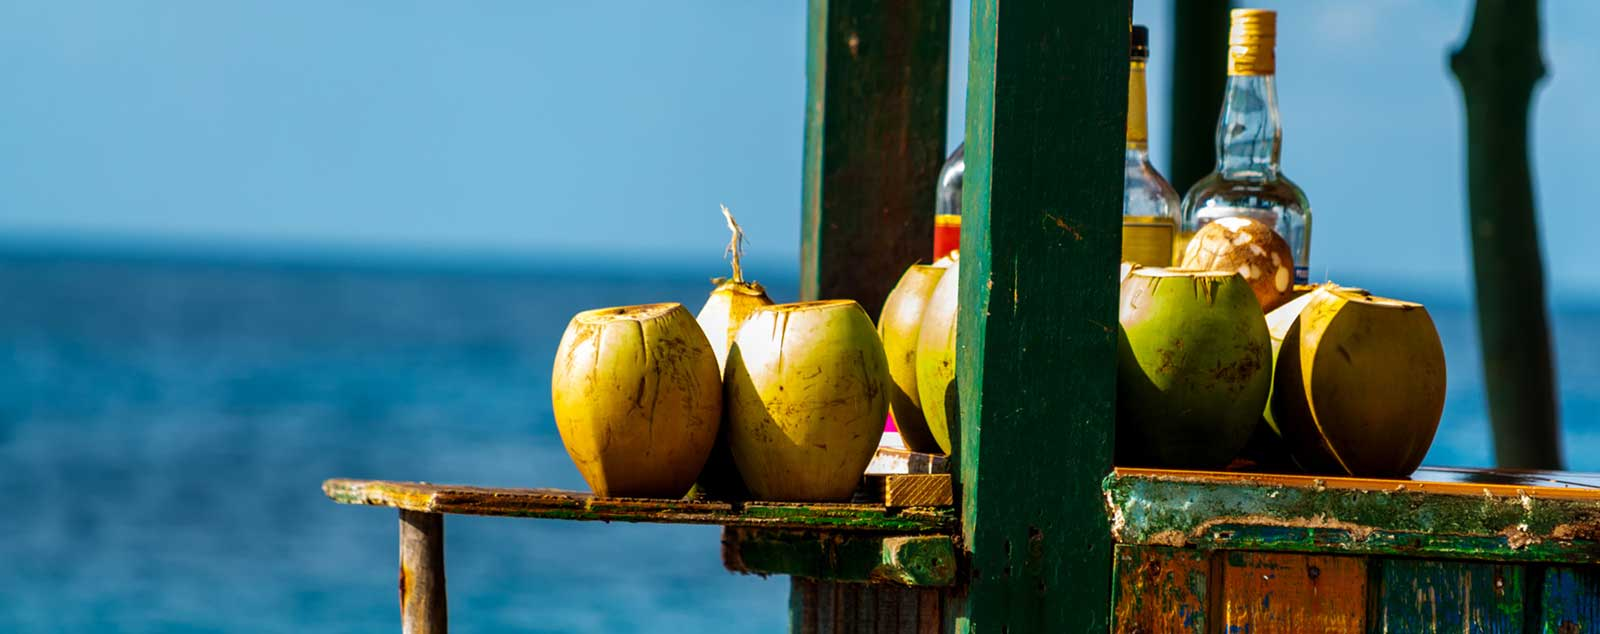 Many coconuts and bottles of rum sit on a colorfully painted wooden bar